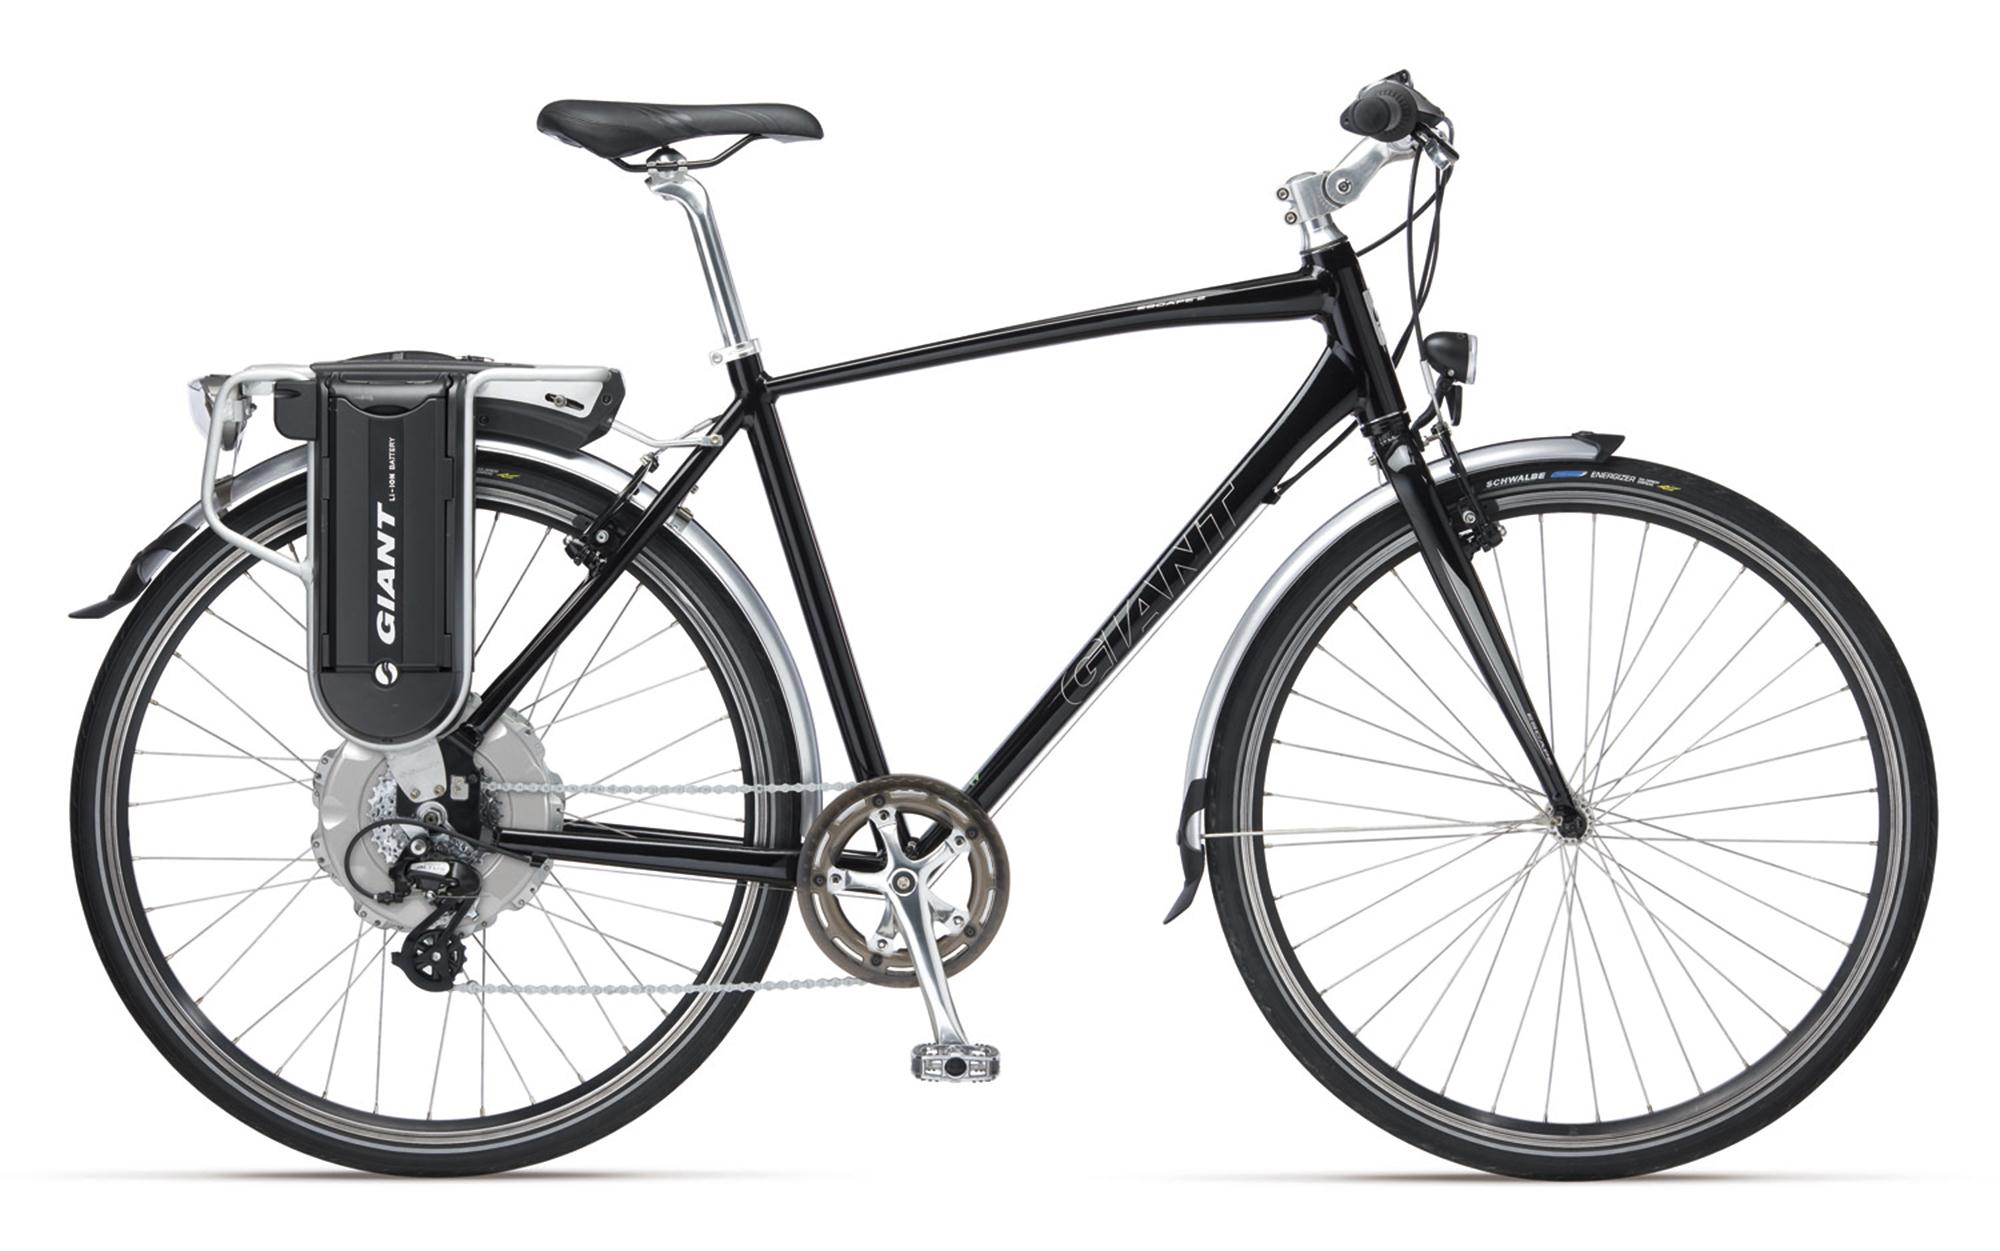 2a69b1d7168 Giant Escape Hybrid 2 Electric Bicycle £809.00